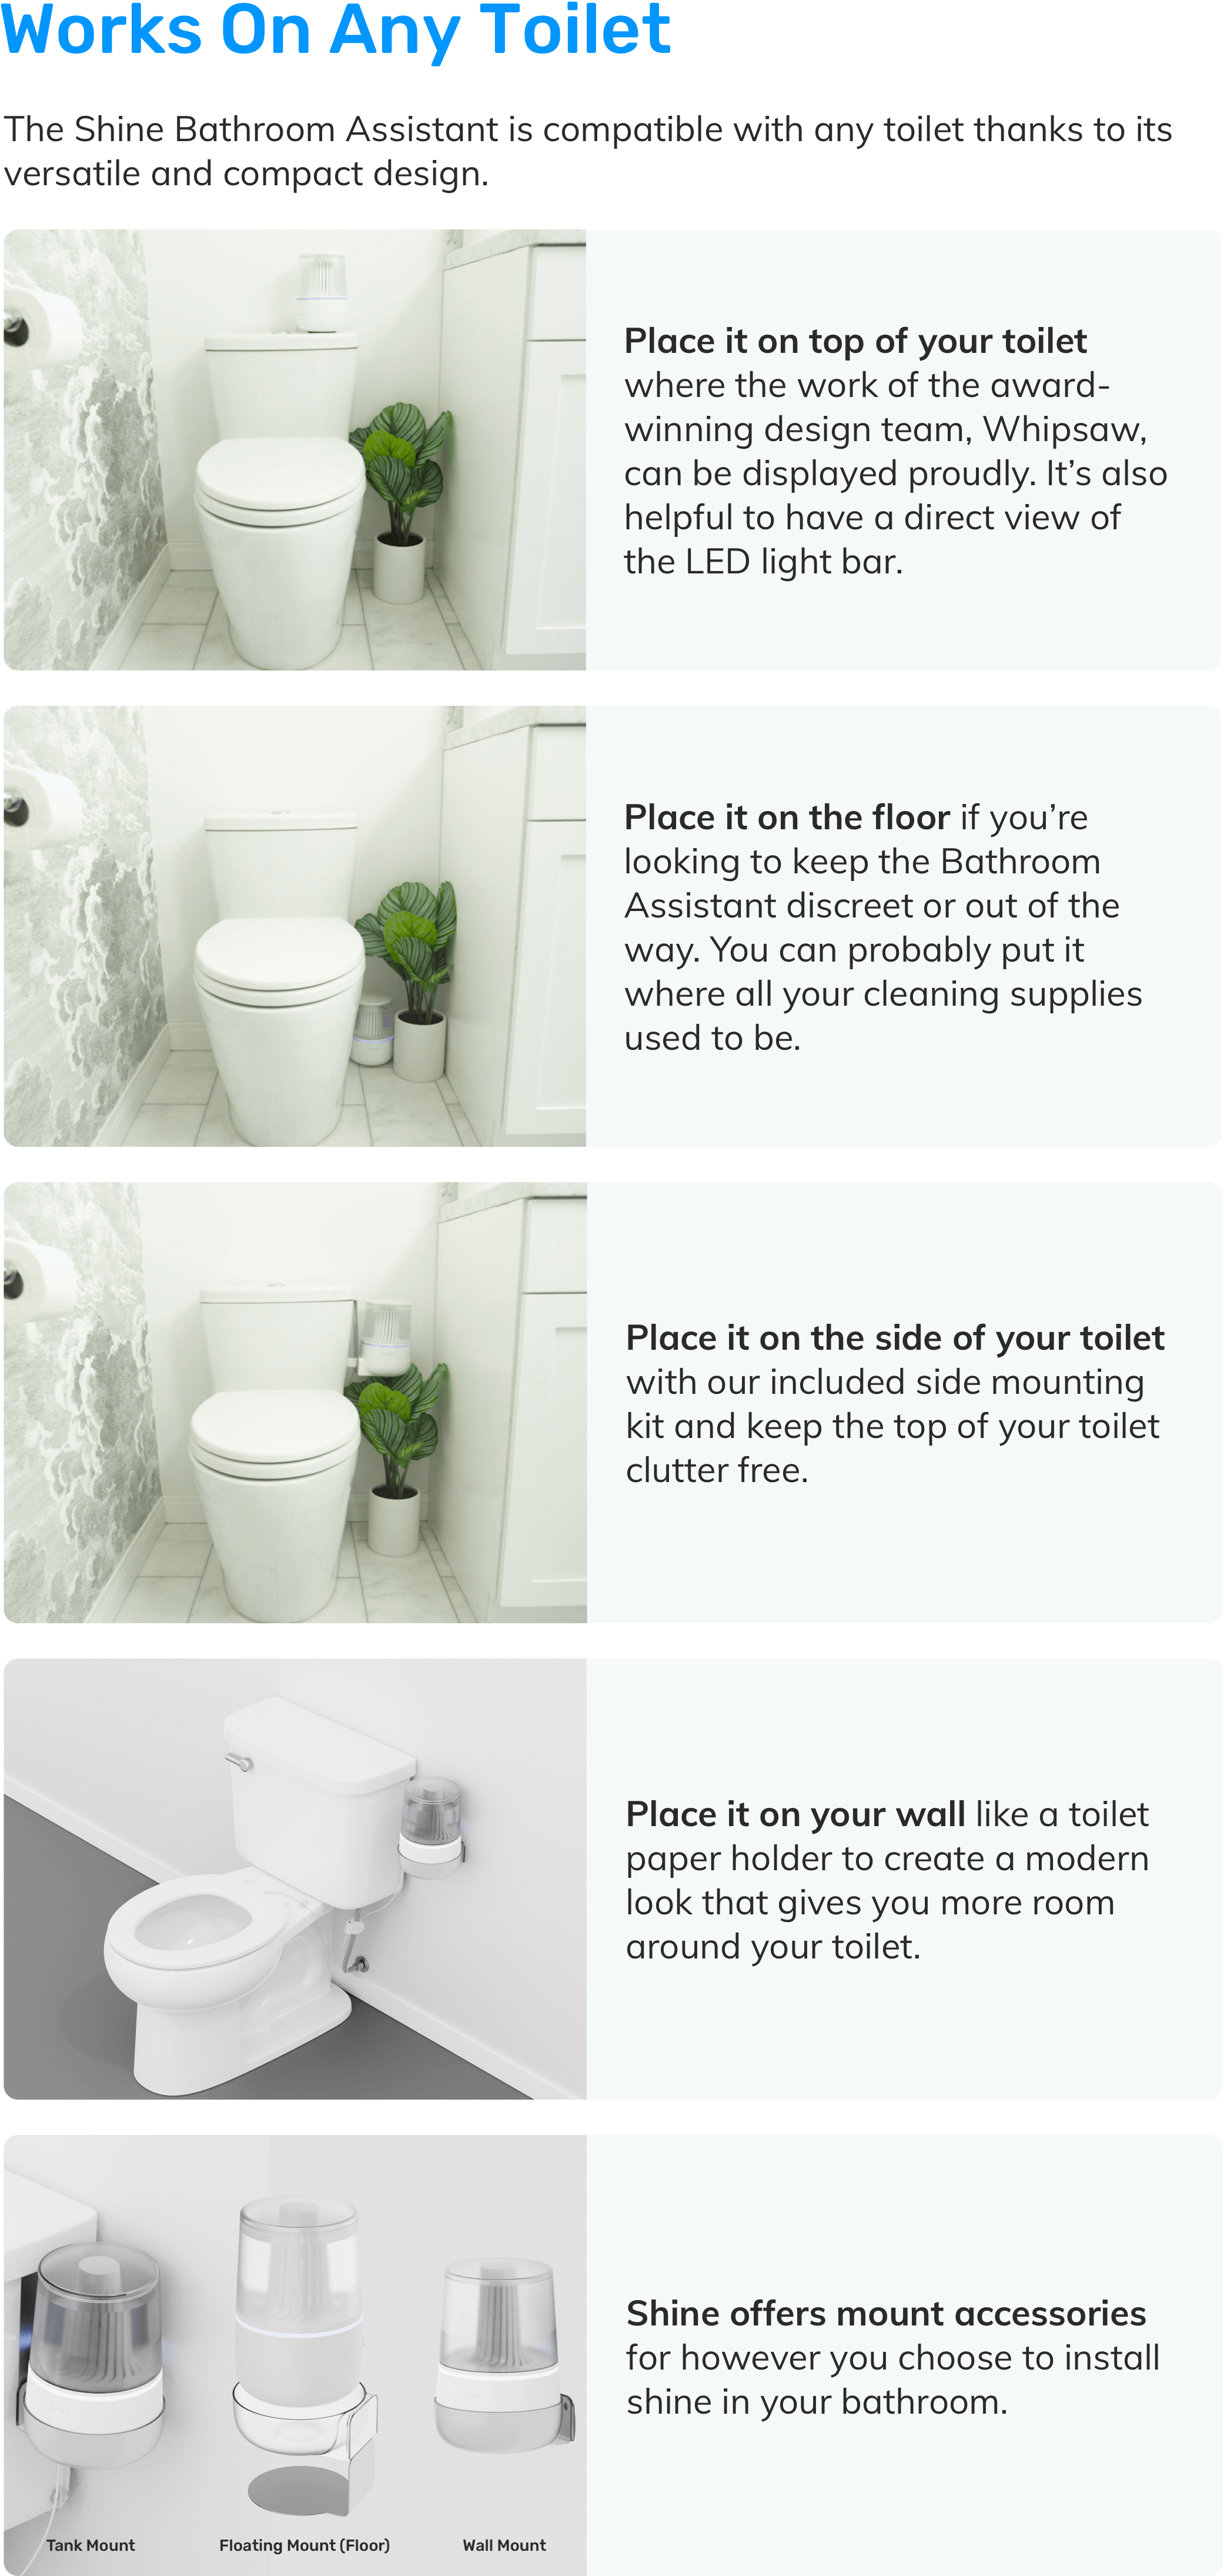 The Shine Bathroom Assistant is compatible with any toilet thanks to its versatile and compact design. The Active Water Intelligence (AWI) sensor clamps onto most common water inlet line sizes.